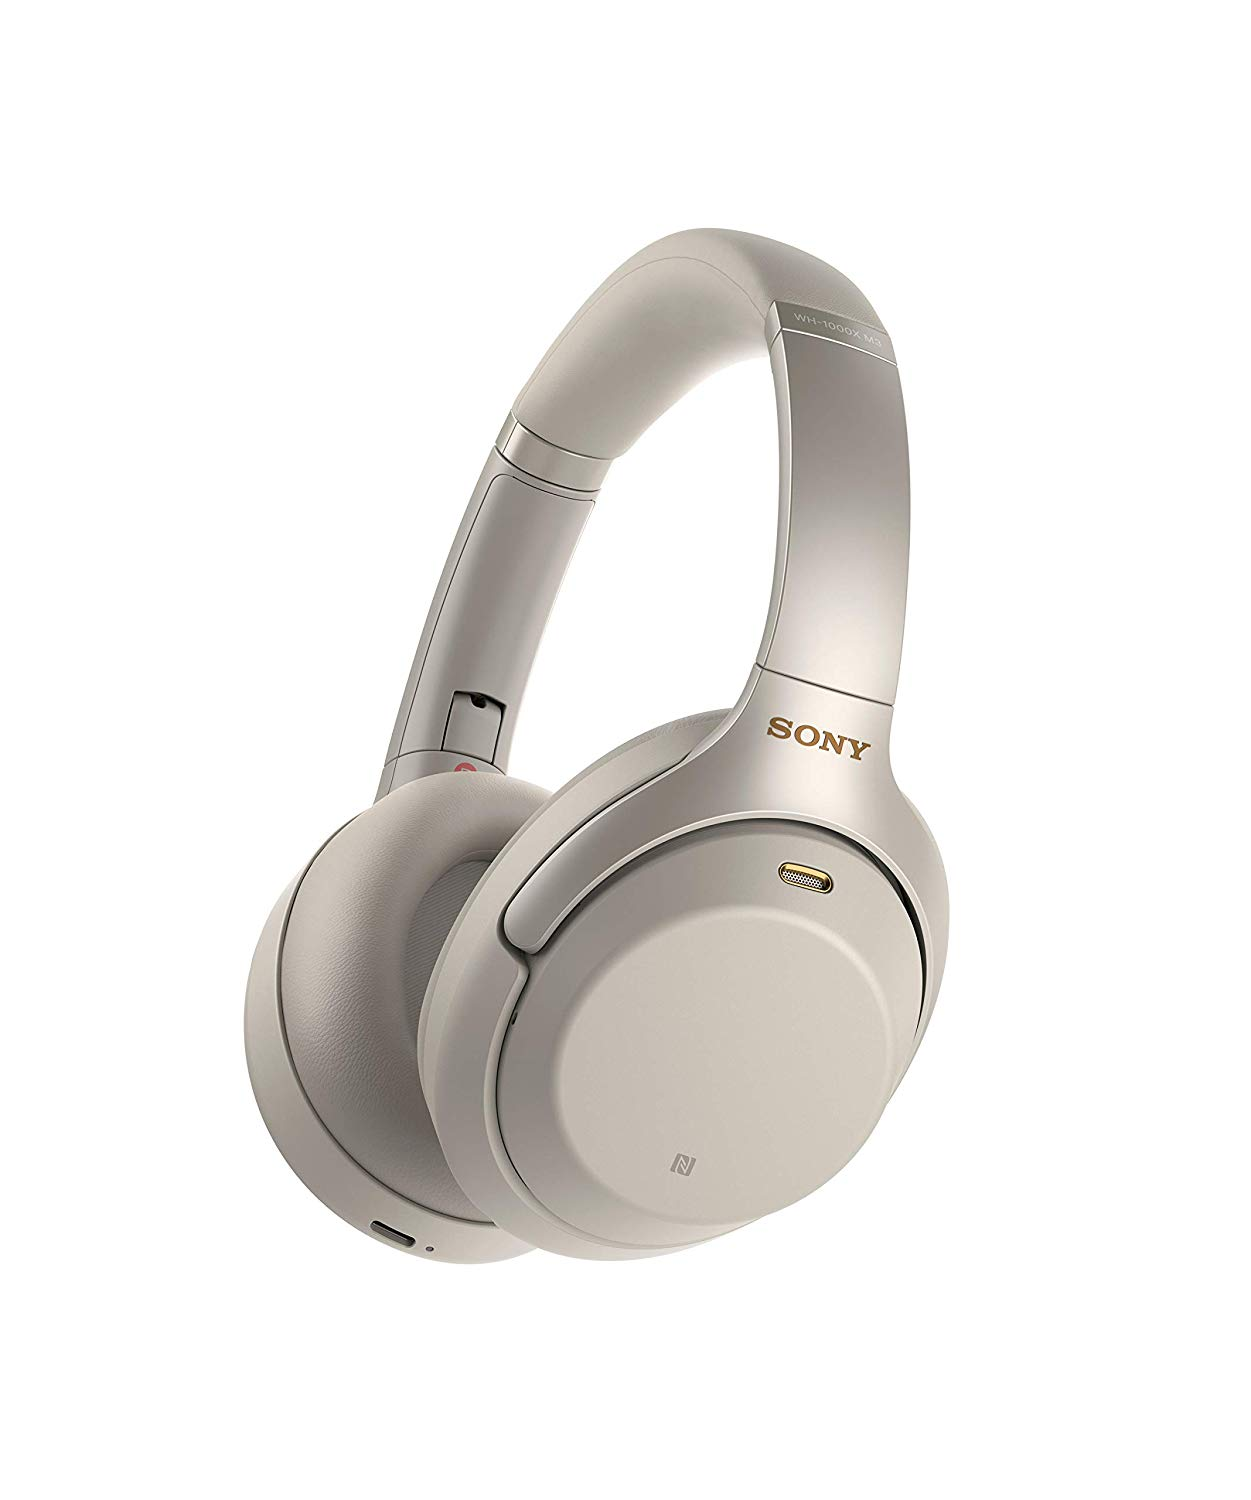 casque audio bluetooth sony appairage